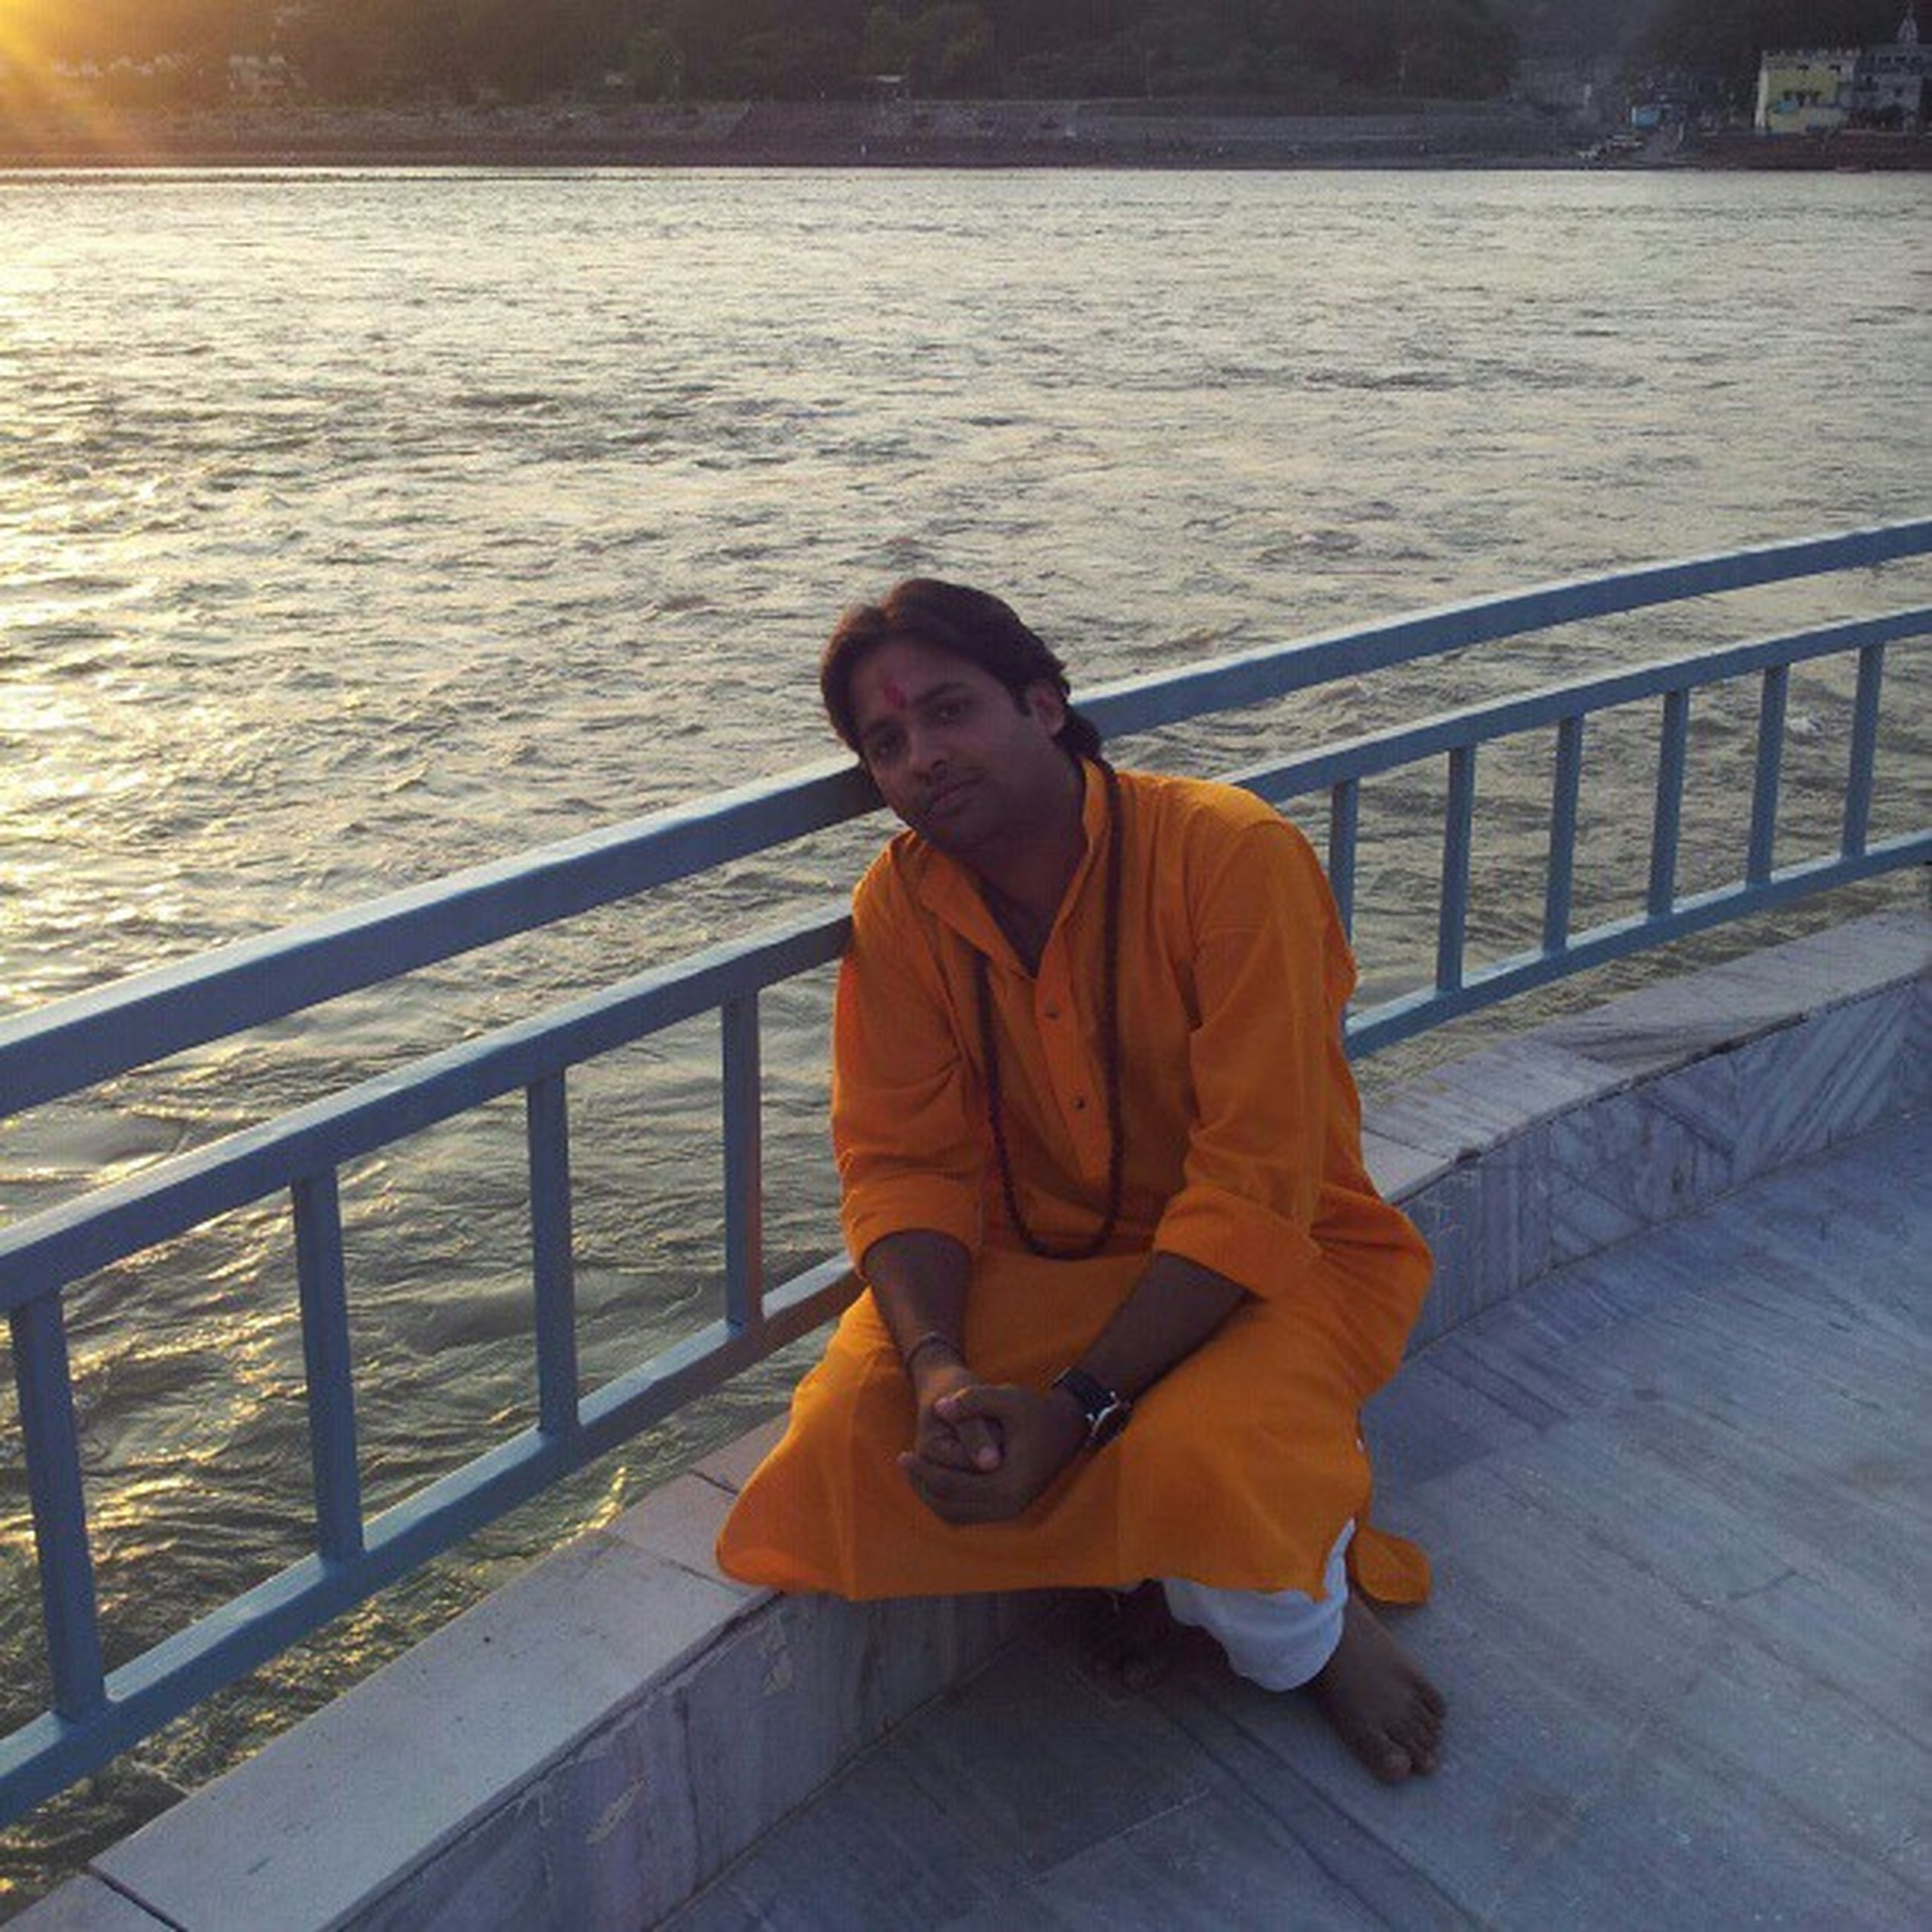 lifestyles, young adult, person, casual clothing, water, leisure activity, sitting, portrait, looking at camera, railing, full length, standing, smiling, river, front view, young men, three quarter length, transportation